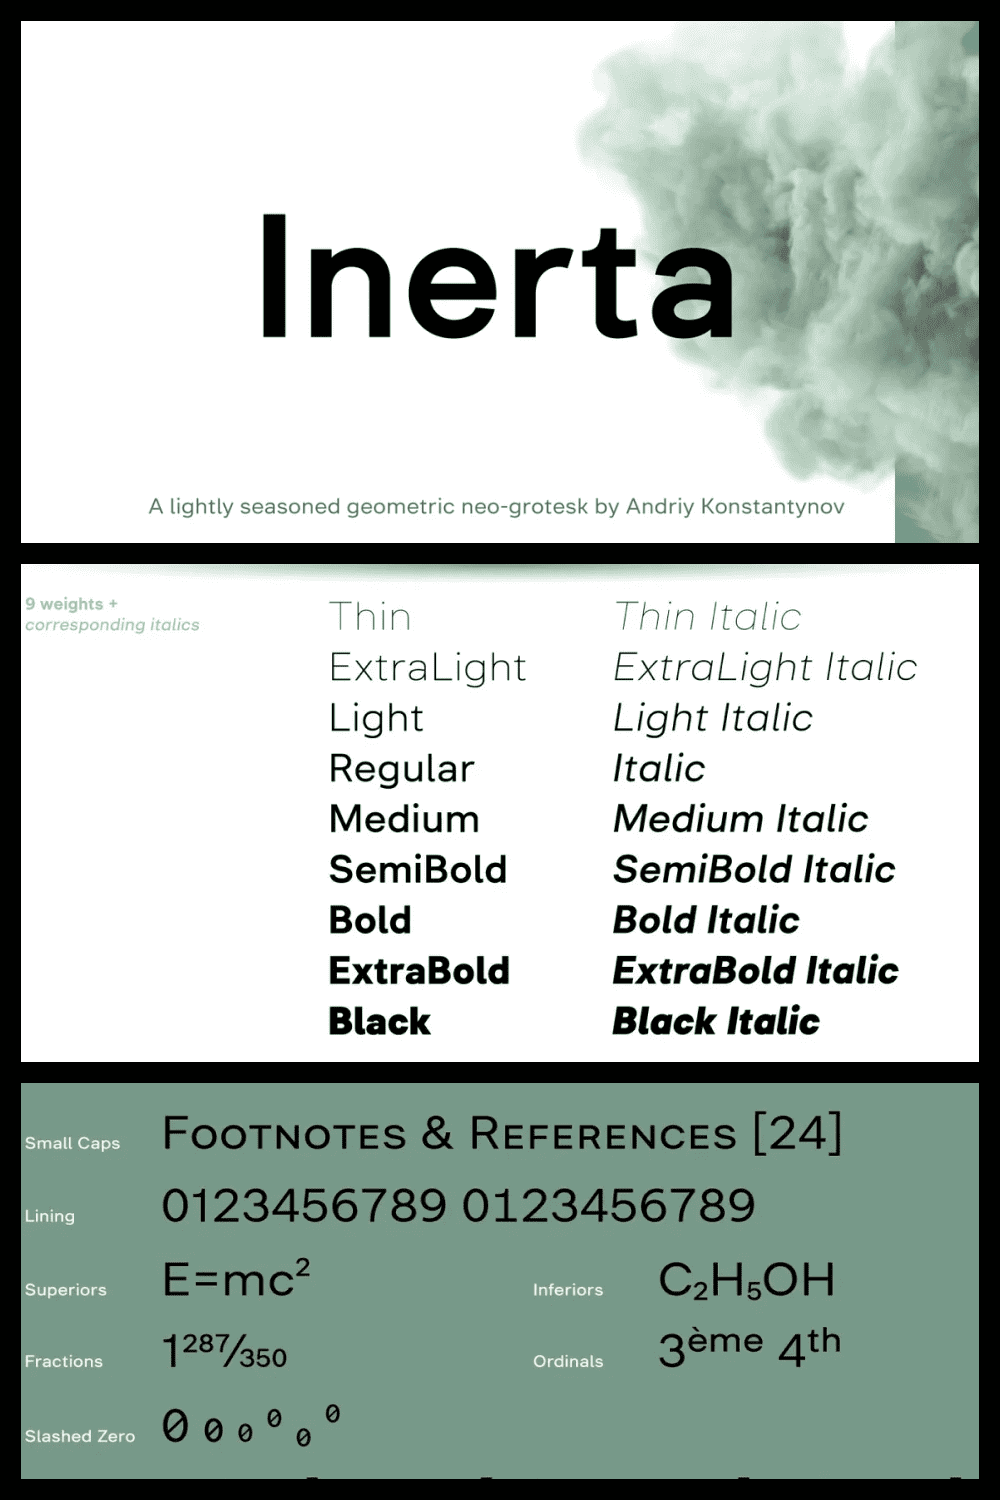 This is a neutral, but not flavourless, cross between a geometric sans and a neo-grotesk.